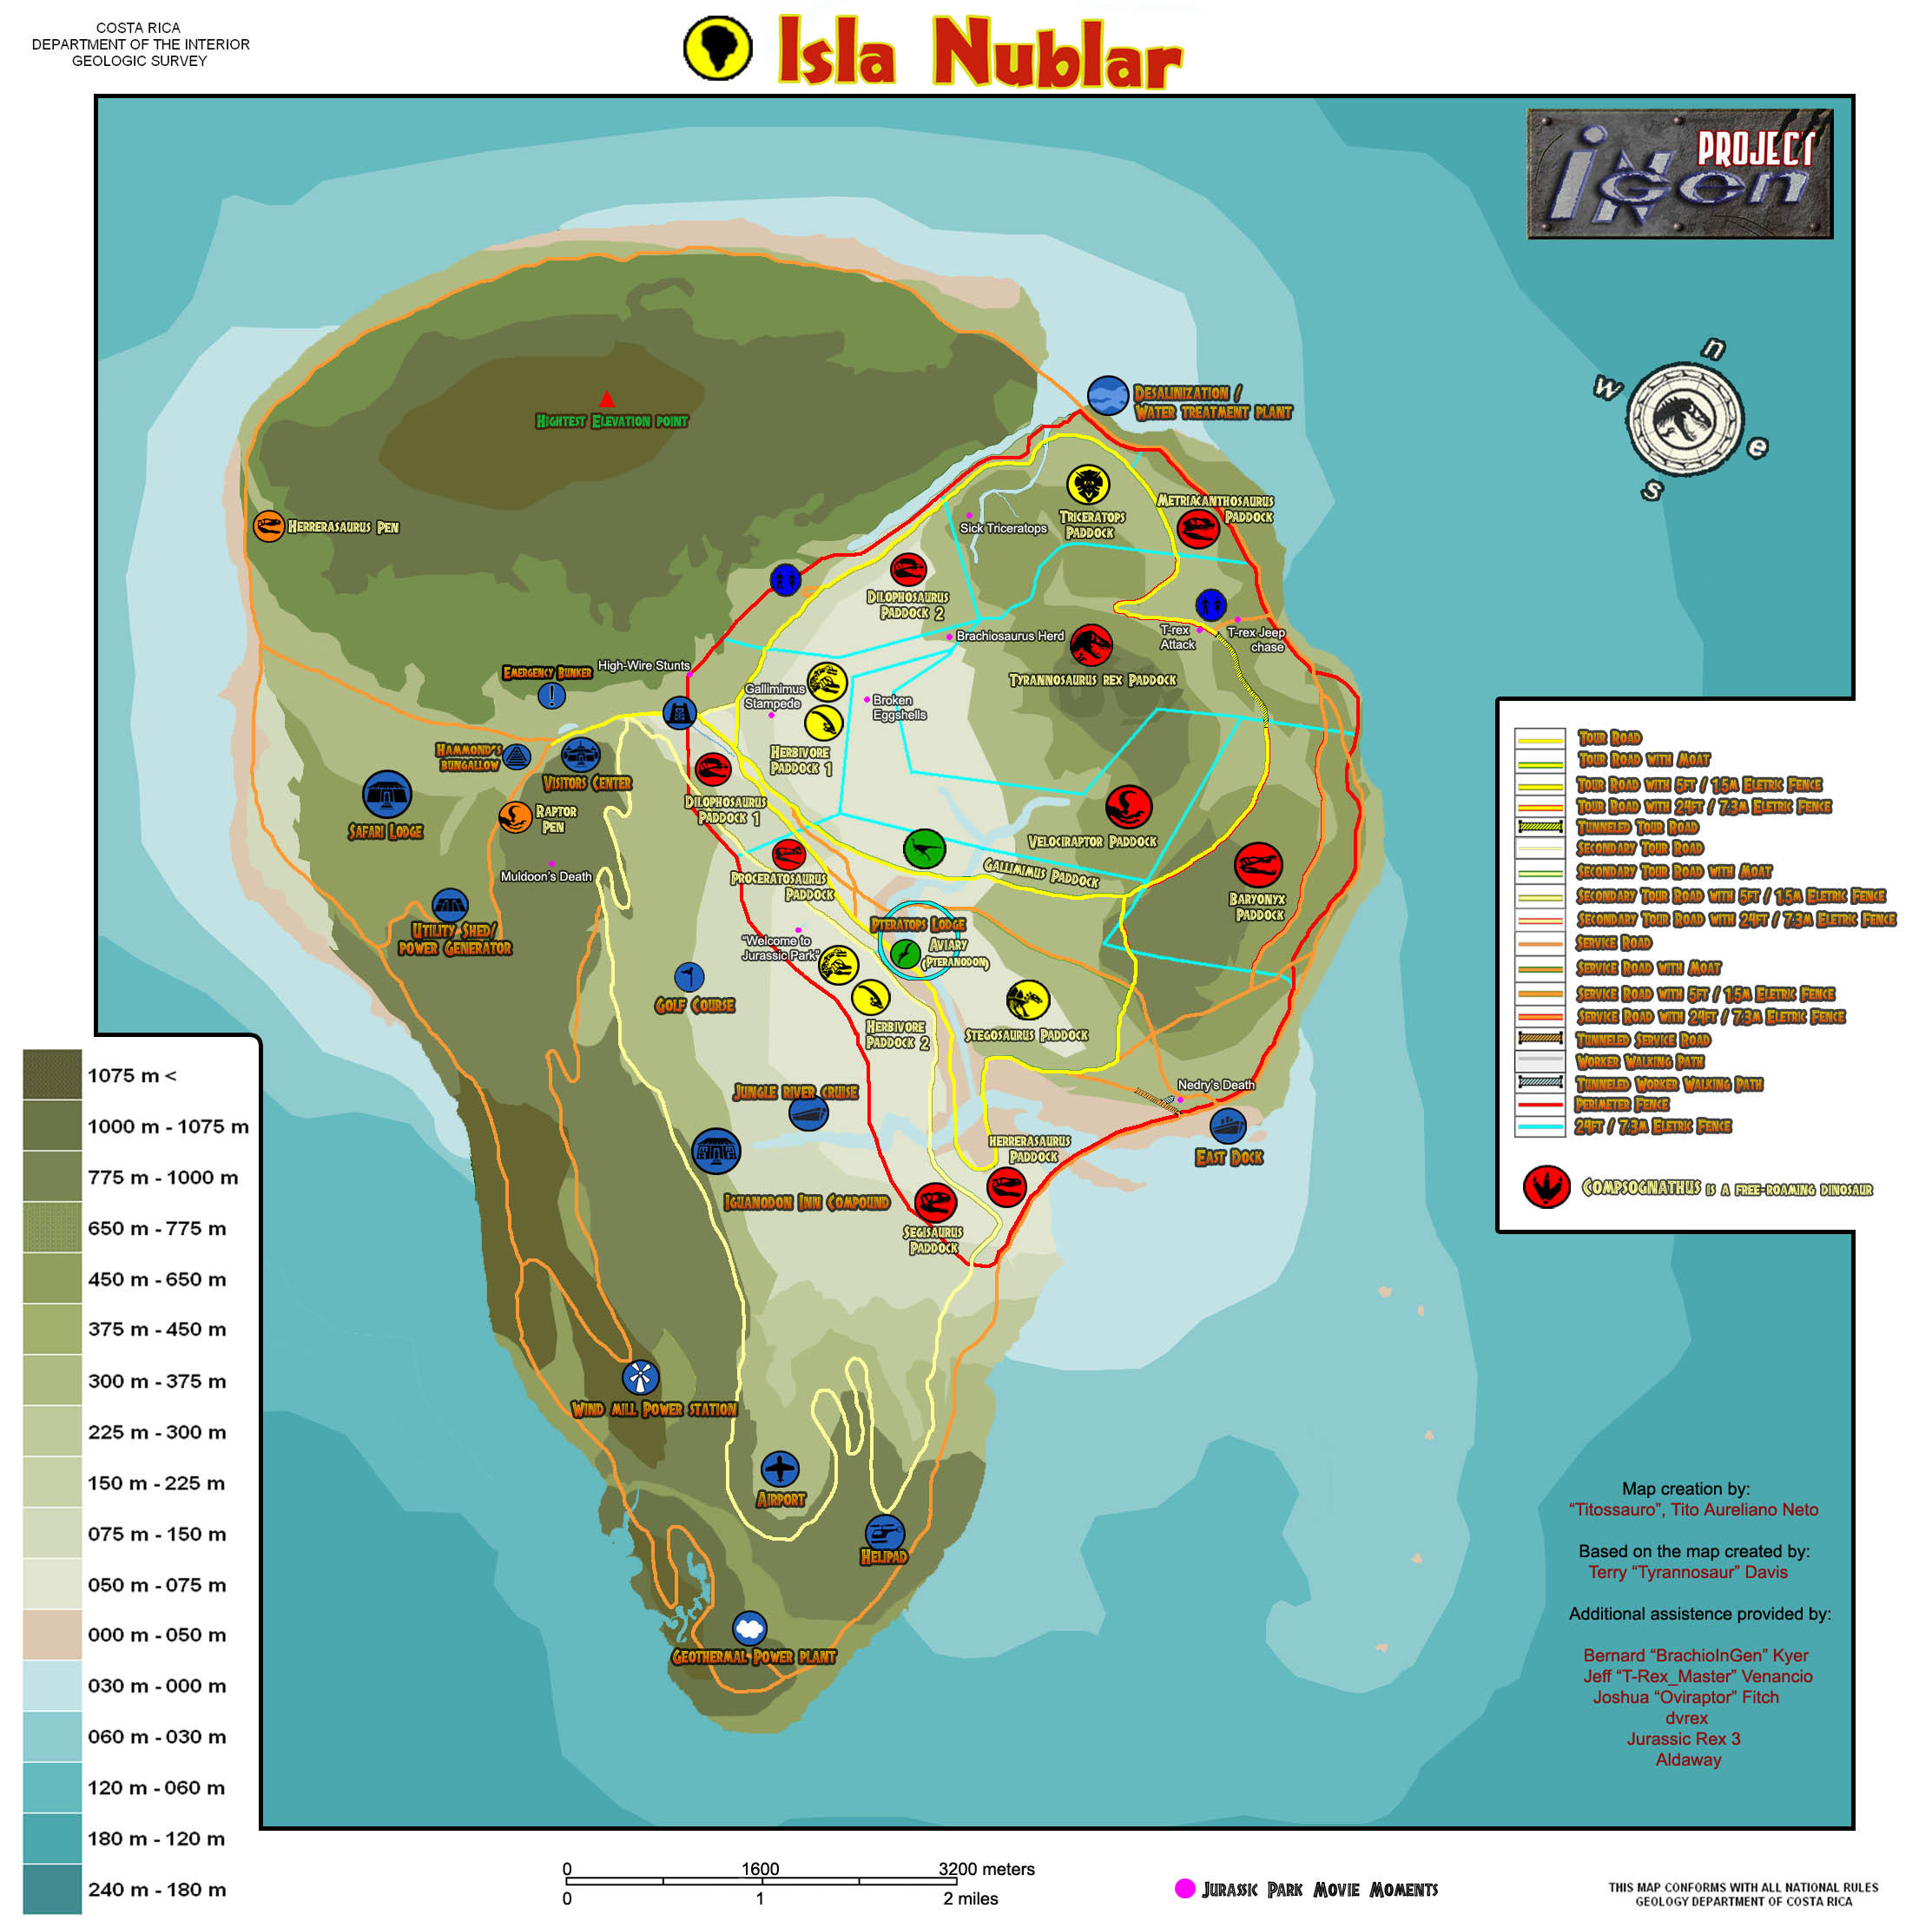 Jurassic Park Isla Nublar Resort Facility map comparison : JurassicPark